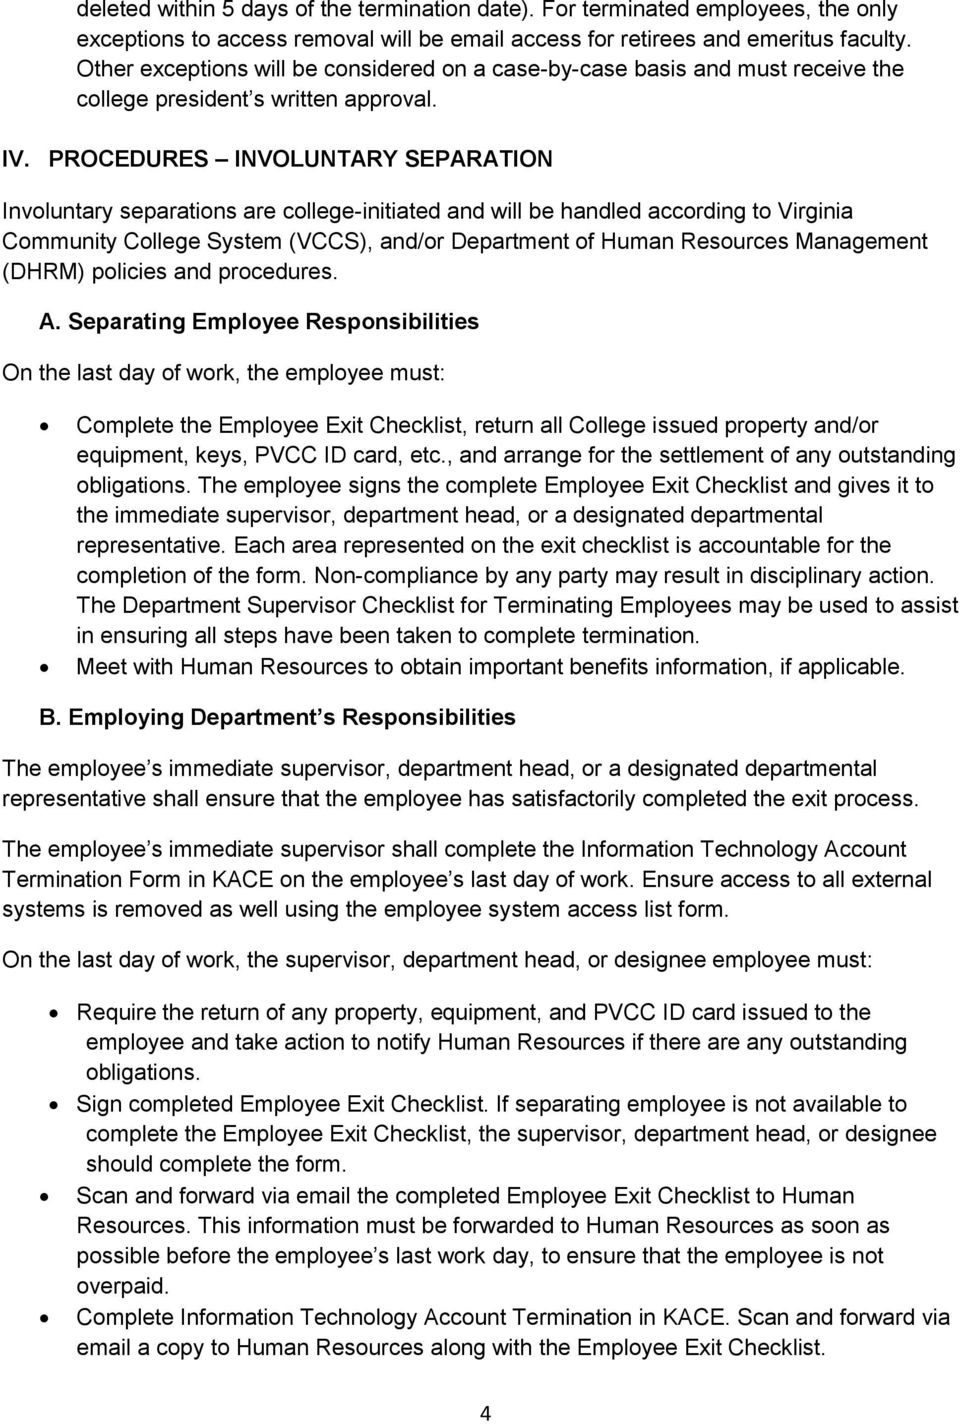 PROCEDURES INVOLUNTARY SEPARATION Involuntary separations are college-initiated and will be handled according to Virginia Community College System (VCCS), and/or Department of Human Resources